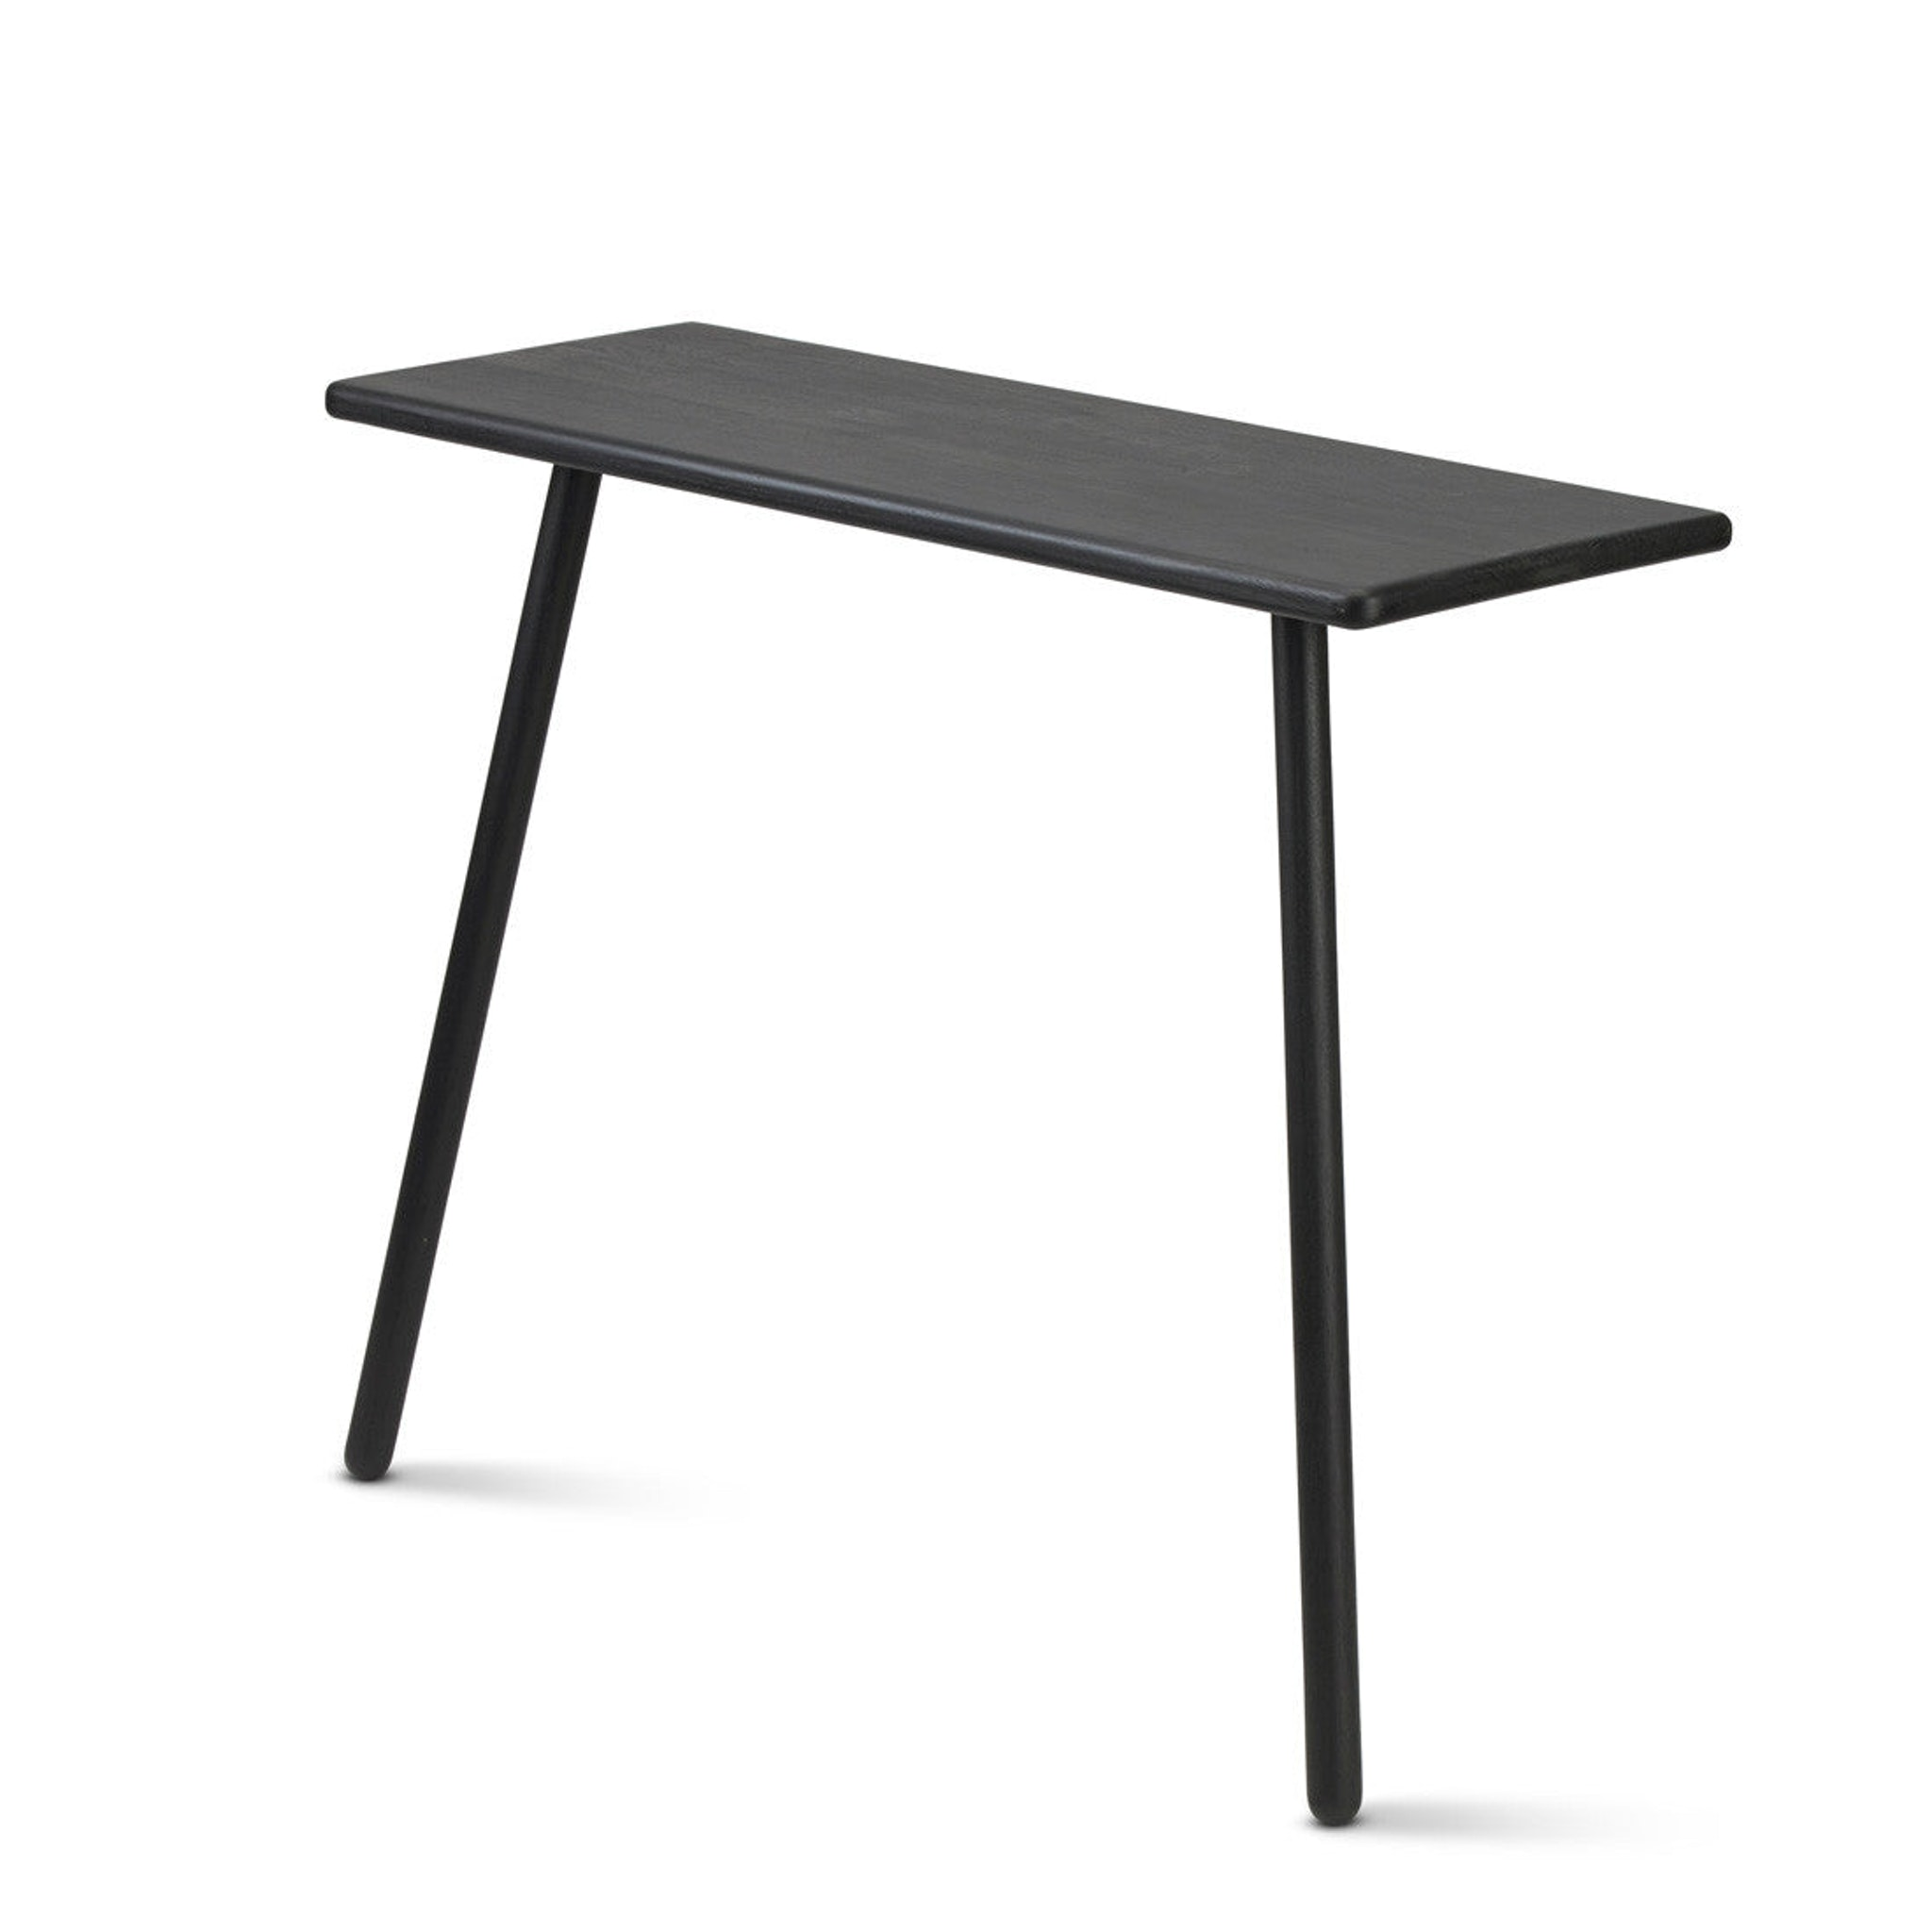 Georg Console Table by Christina Halstrom